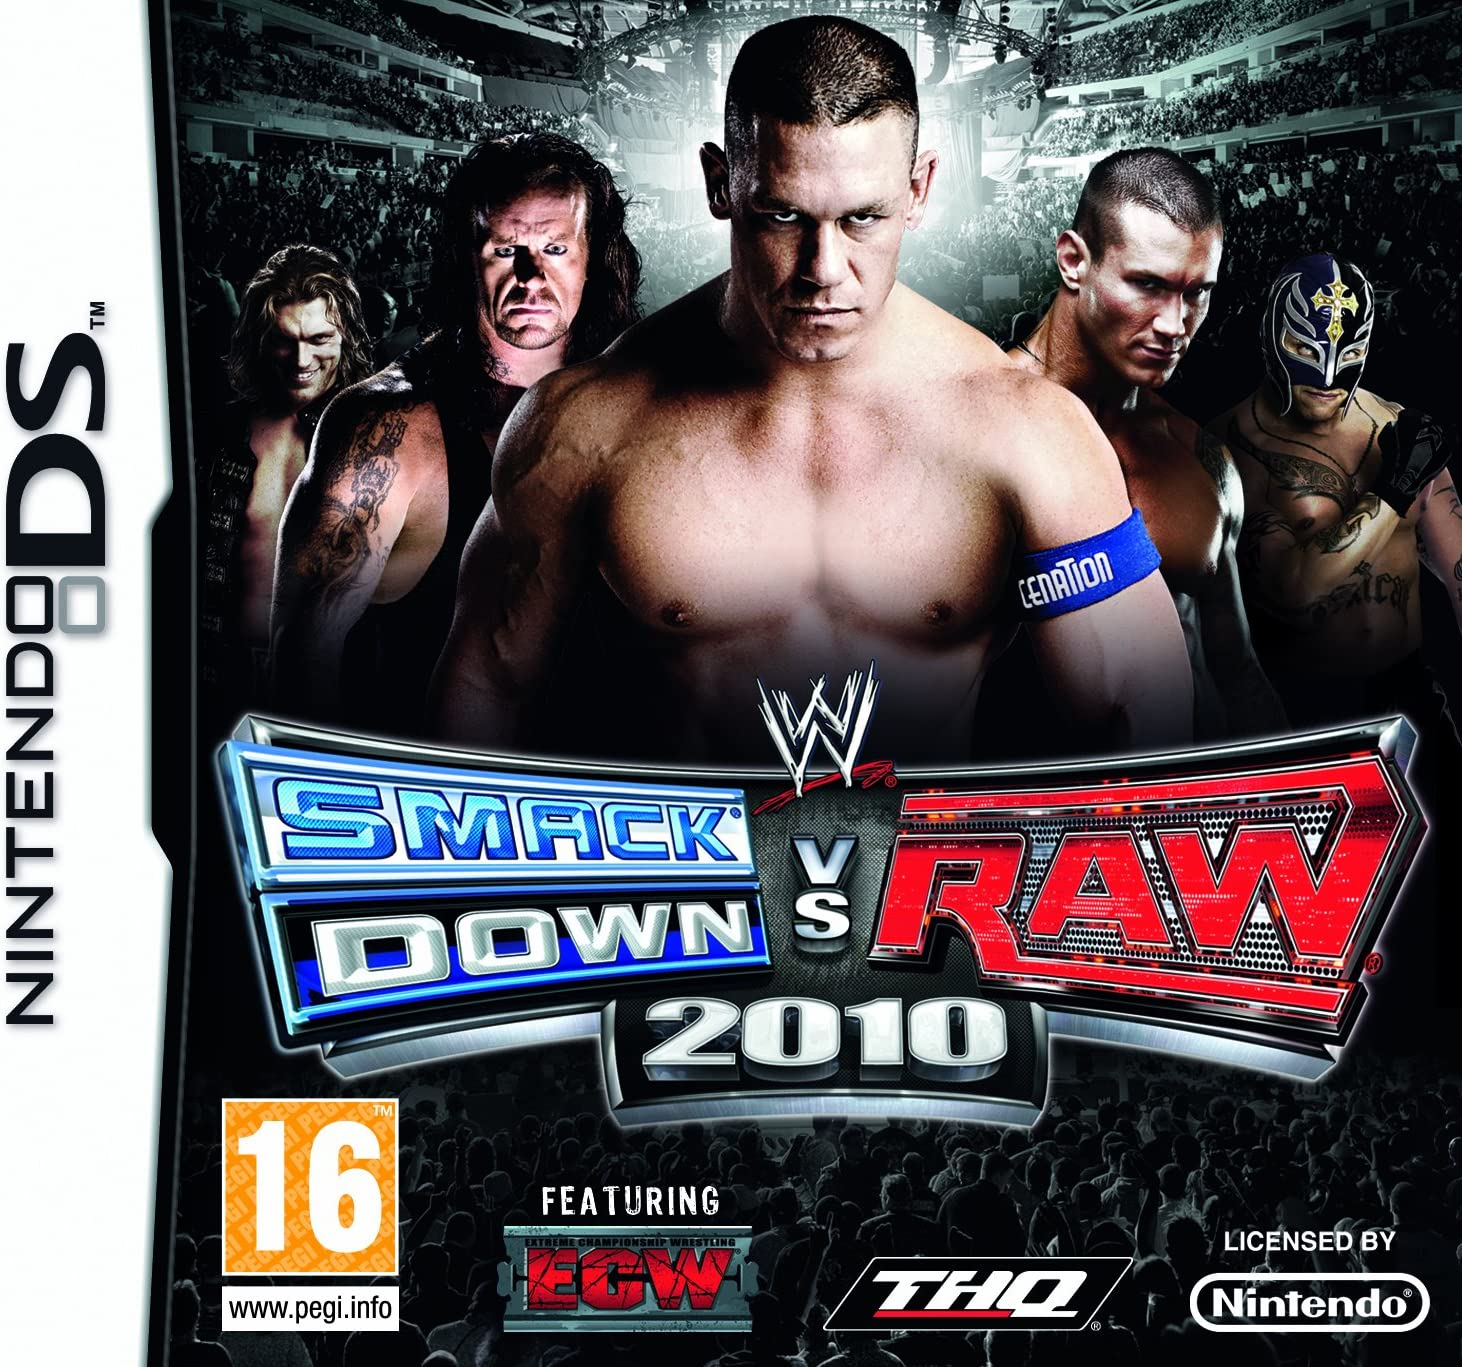 Raw Deal WWE V16.0 Great Technical Knowledge